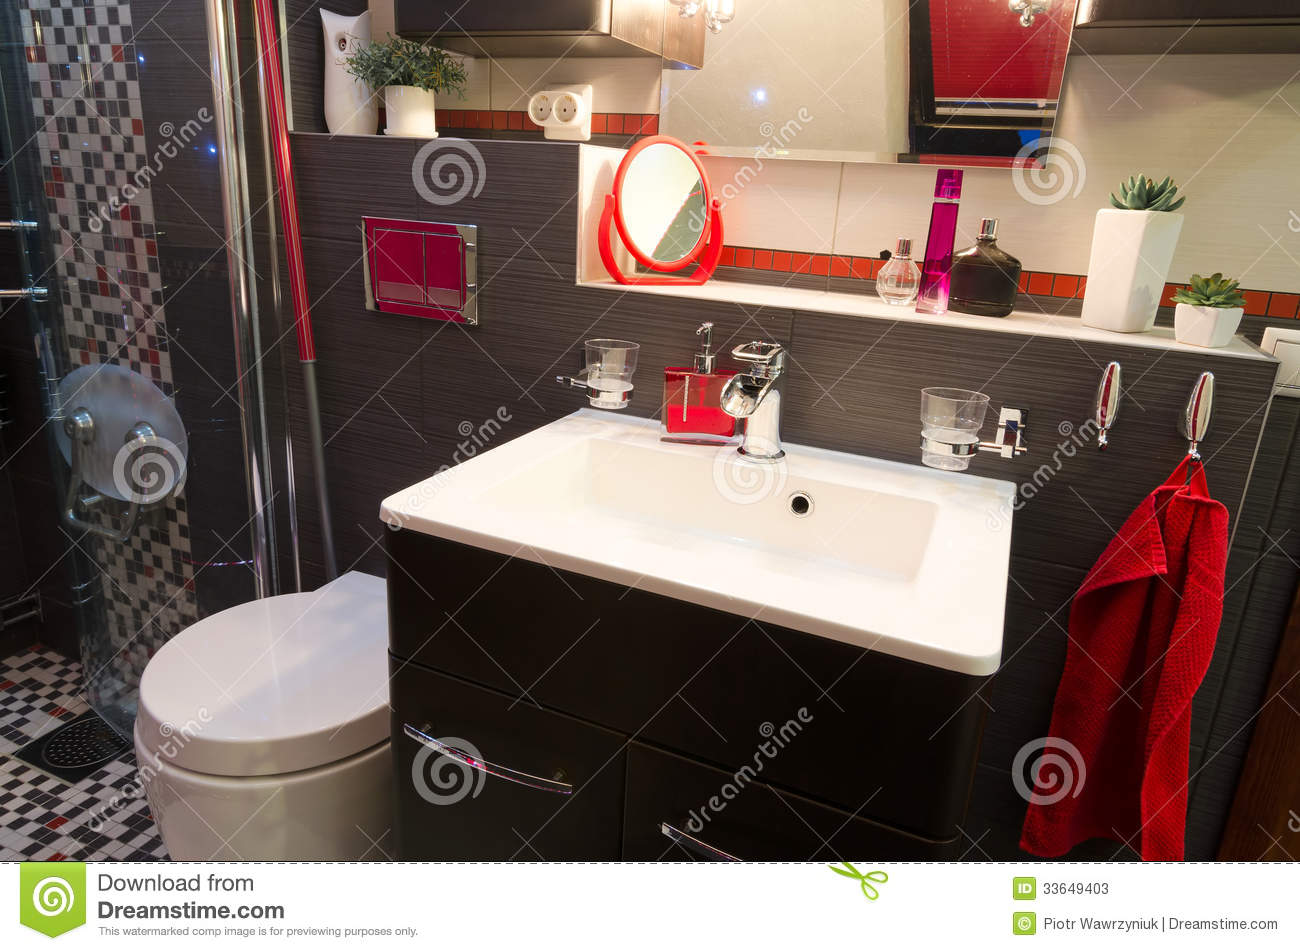 Red Accents Modern Bathroom Interior With Red Accents Stock Photos